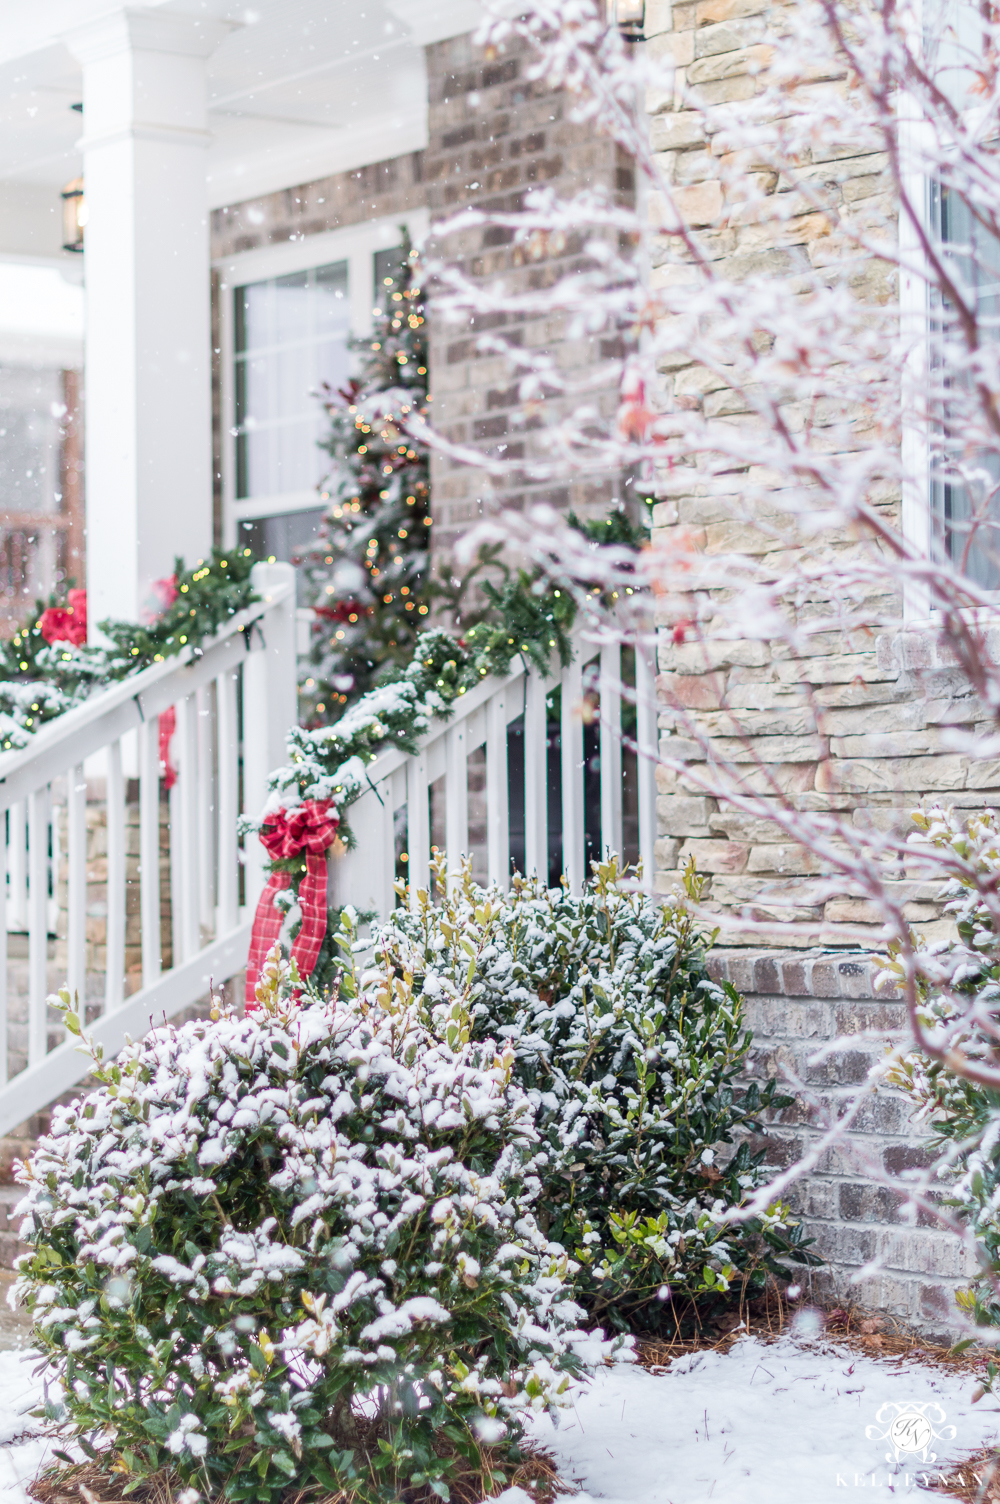 Snowy Christmas Front Porch with Red Bows on Railing